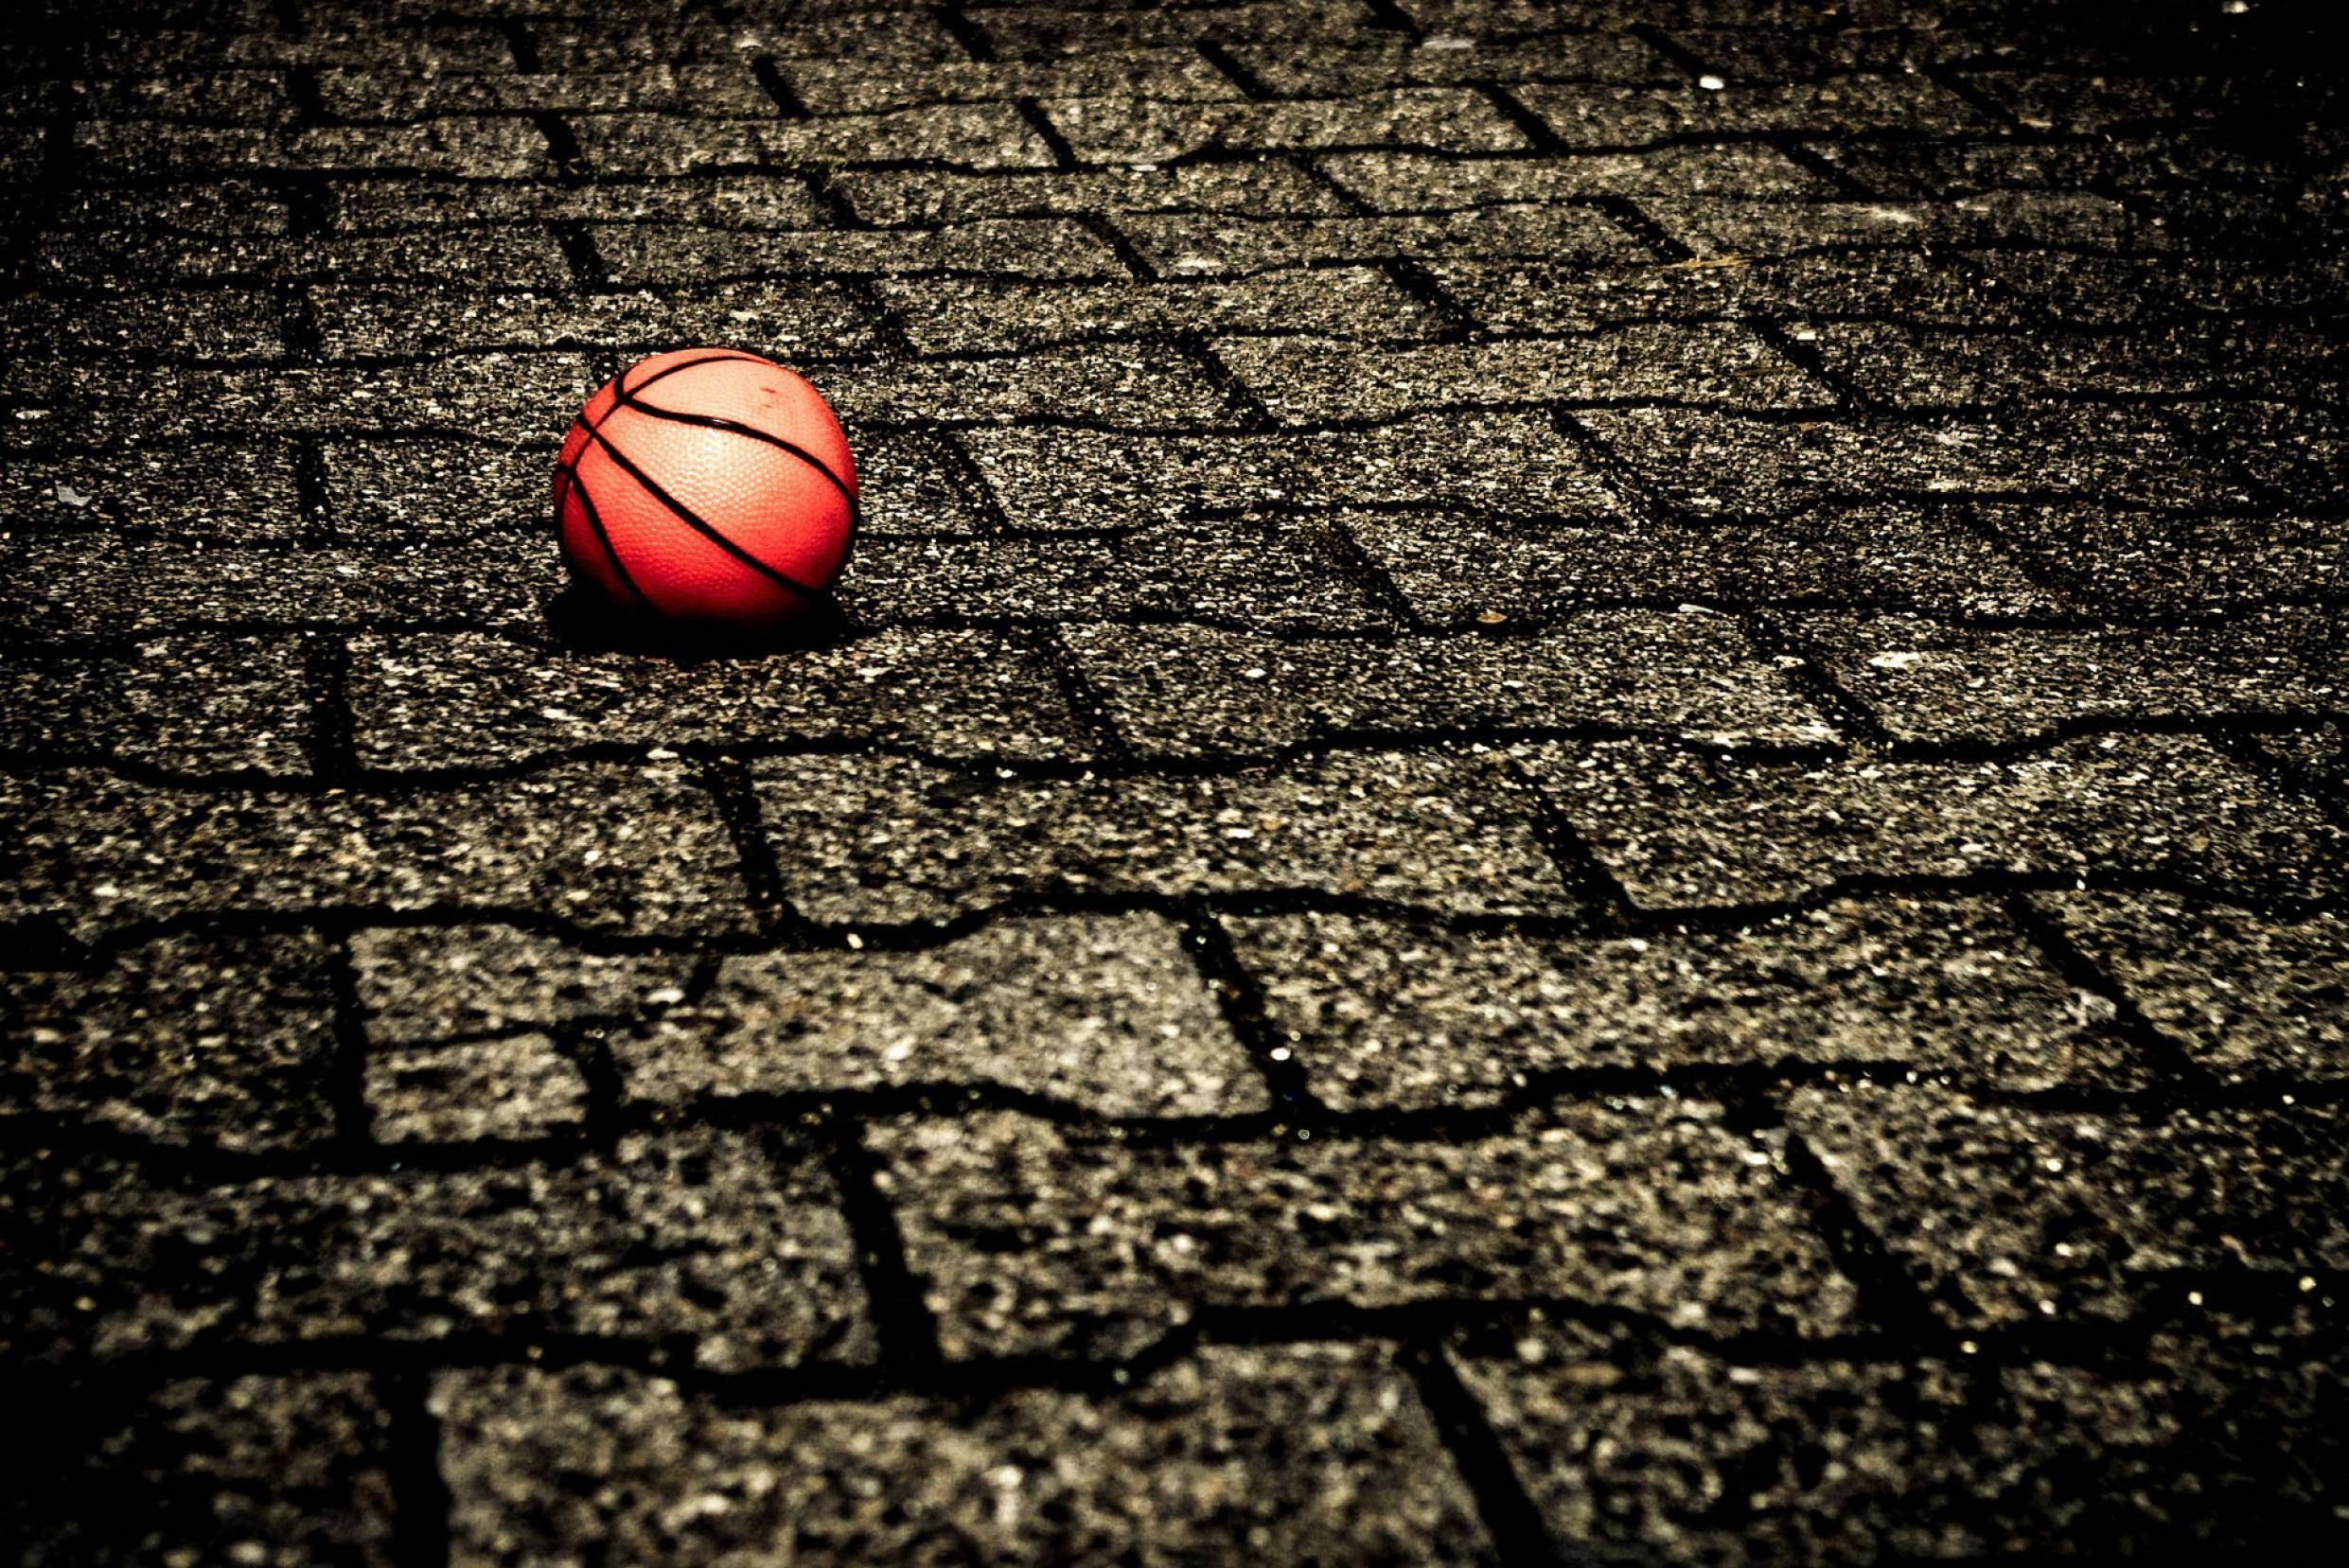 Basketball Wallpapers Best HD Wallpapers by JAYADIP SENJALIYA